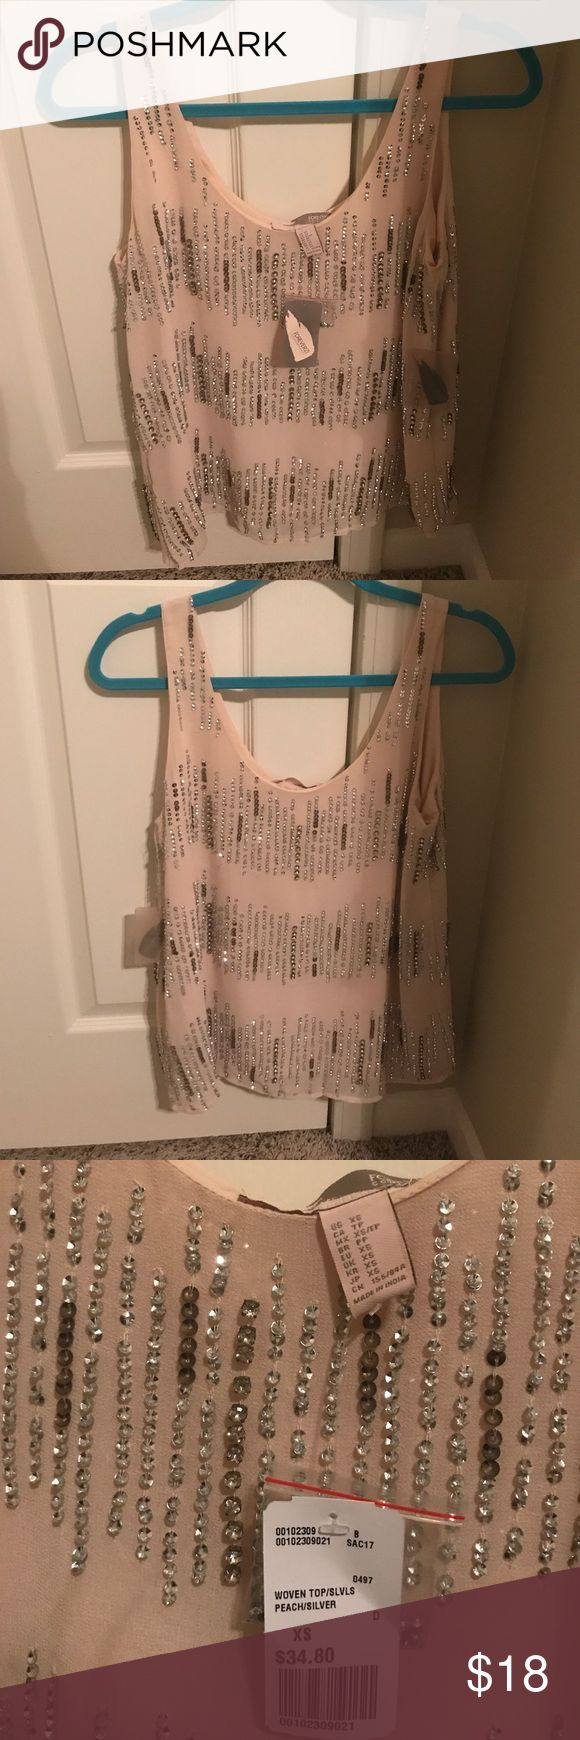 Sequence tank top NWT! Sequence and beaded flowy sleeveless blouse. Solid slip built in so no peek through. Includes extra beading pack with tags. Super cute with white denim. Tops Tank Tops